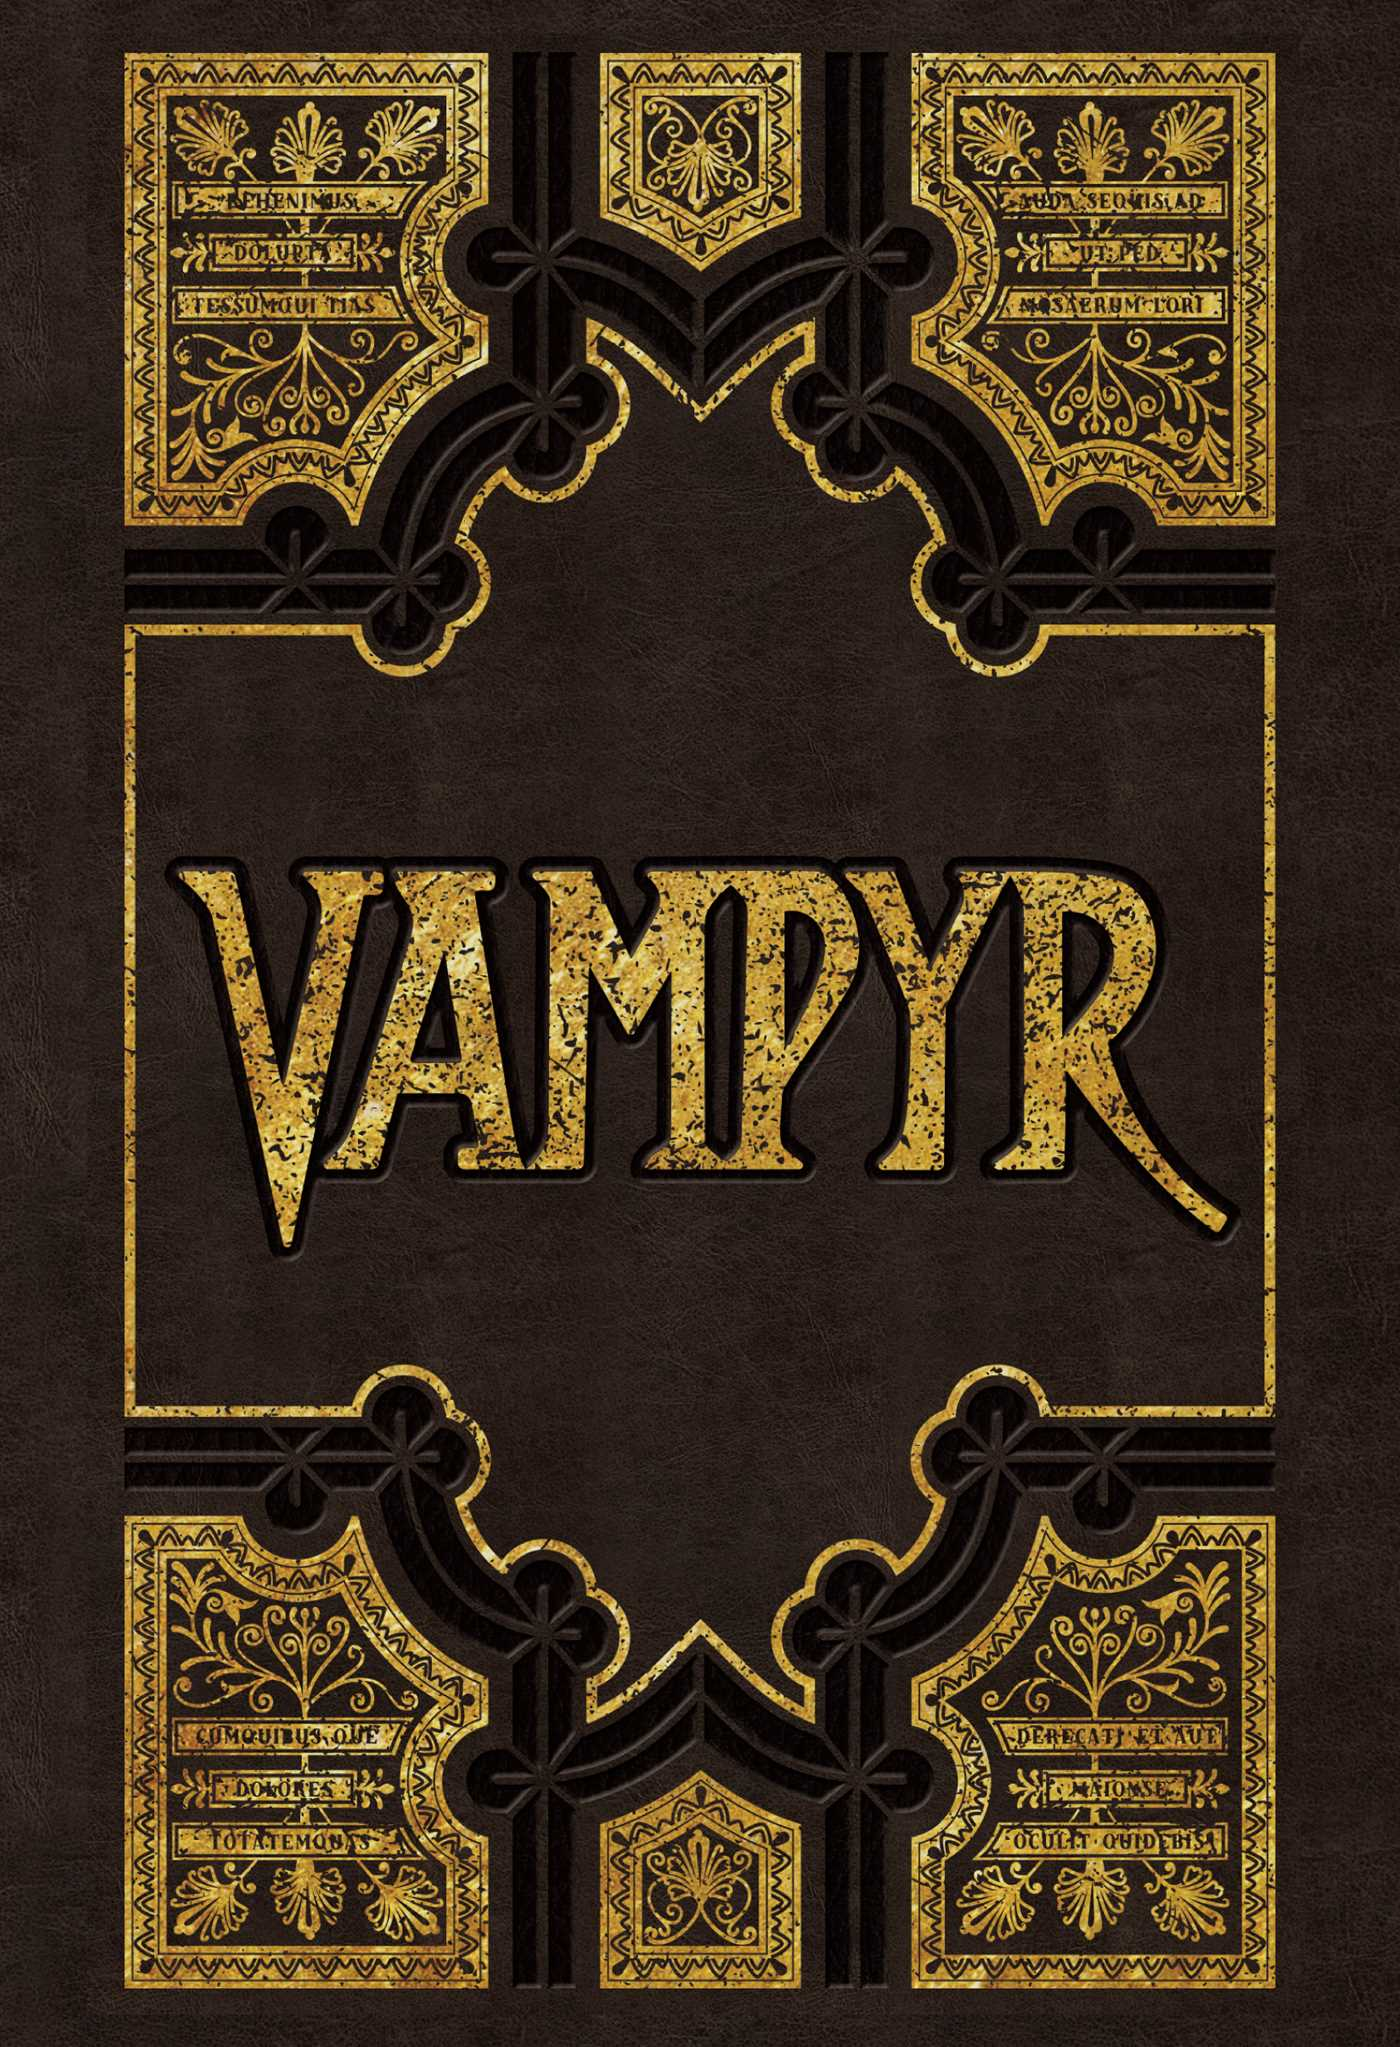 Buffy the Vampire Slayer Vampyr Stationery Set  Book by Insight Editions  Official Publisher